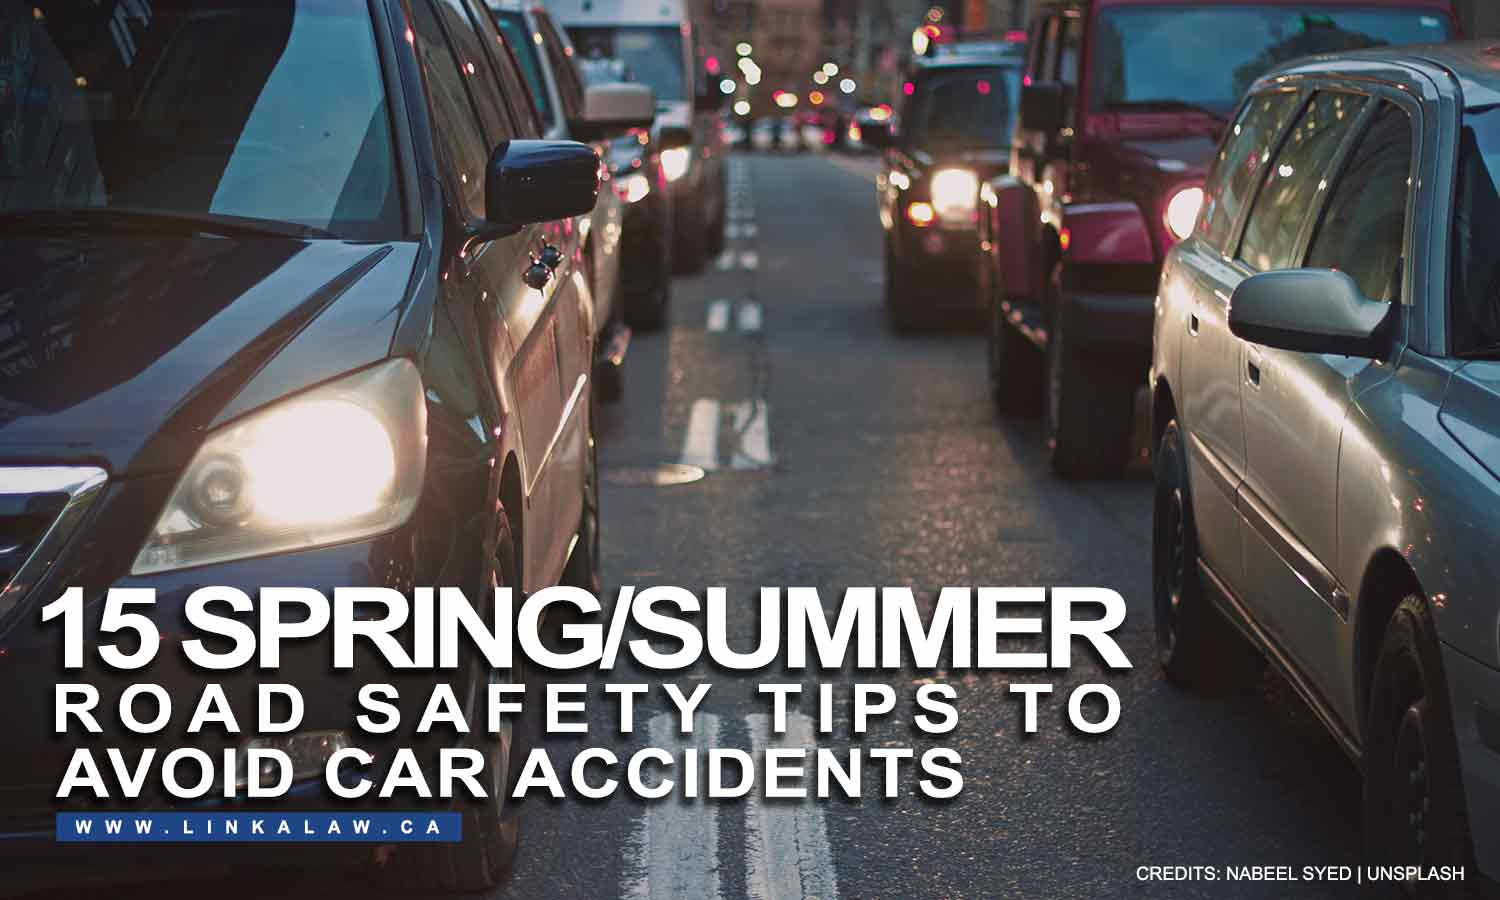 15 Spring/Summer Road Safety Tips to Avoid Car Accidents